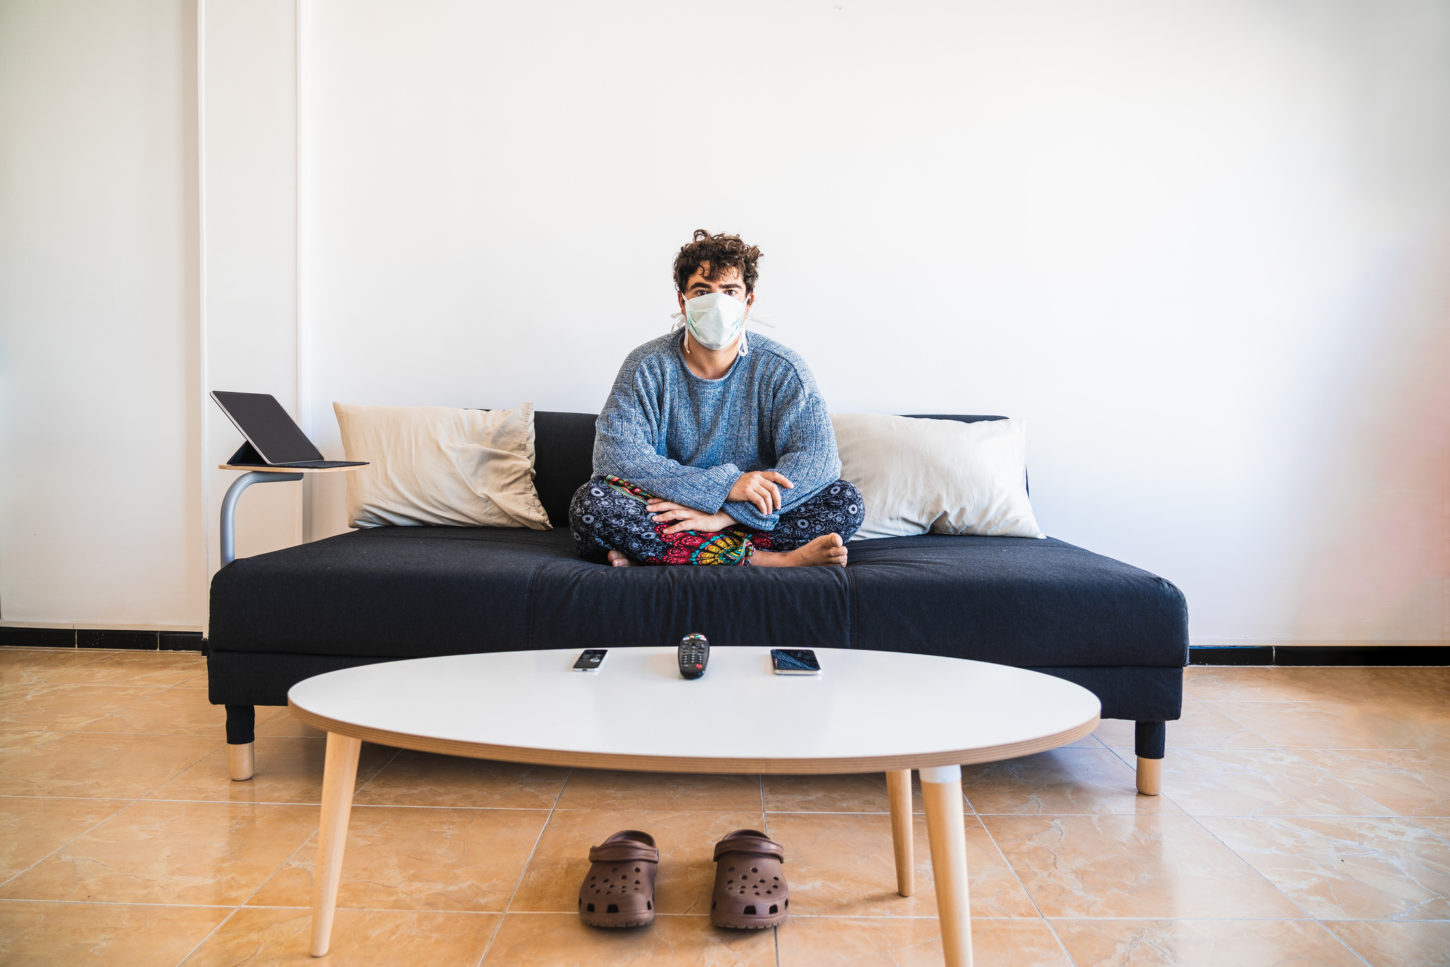 Young hispanic man sits on the couch while protecting against COVID-19 coronavirus due to it's virulency and impact on media and society